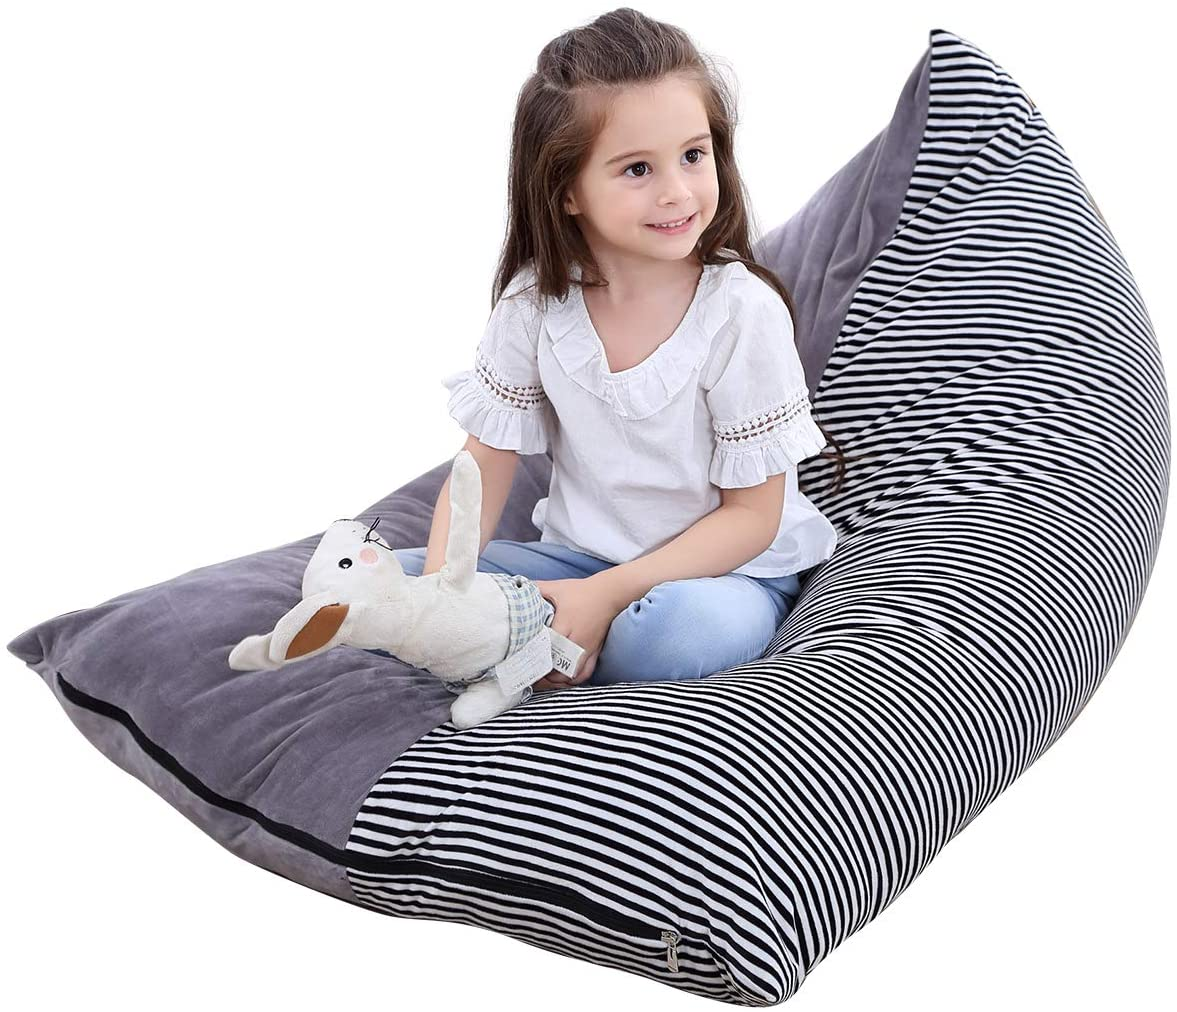 DaMohony Toy Storage Bag Chair Stuffed Animal Bean Chair Extra Large Canvas Pouch Stripe Sofa for Kids Adults